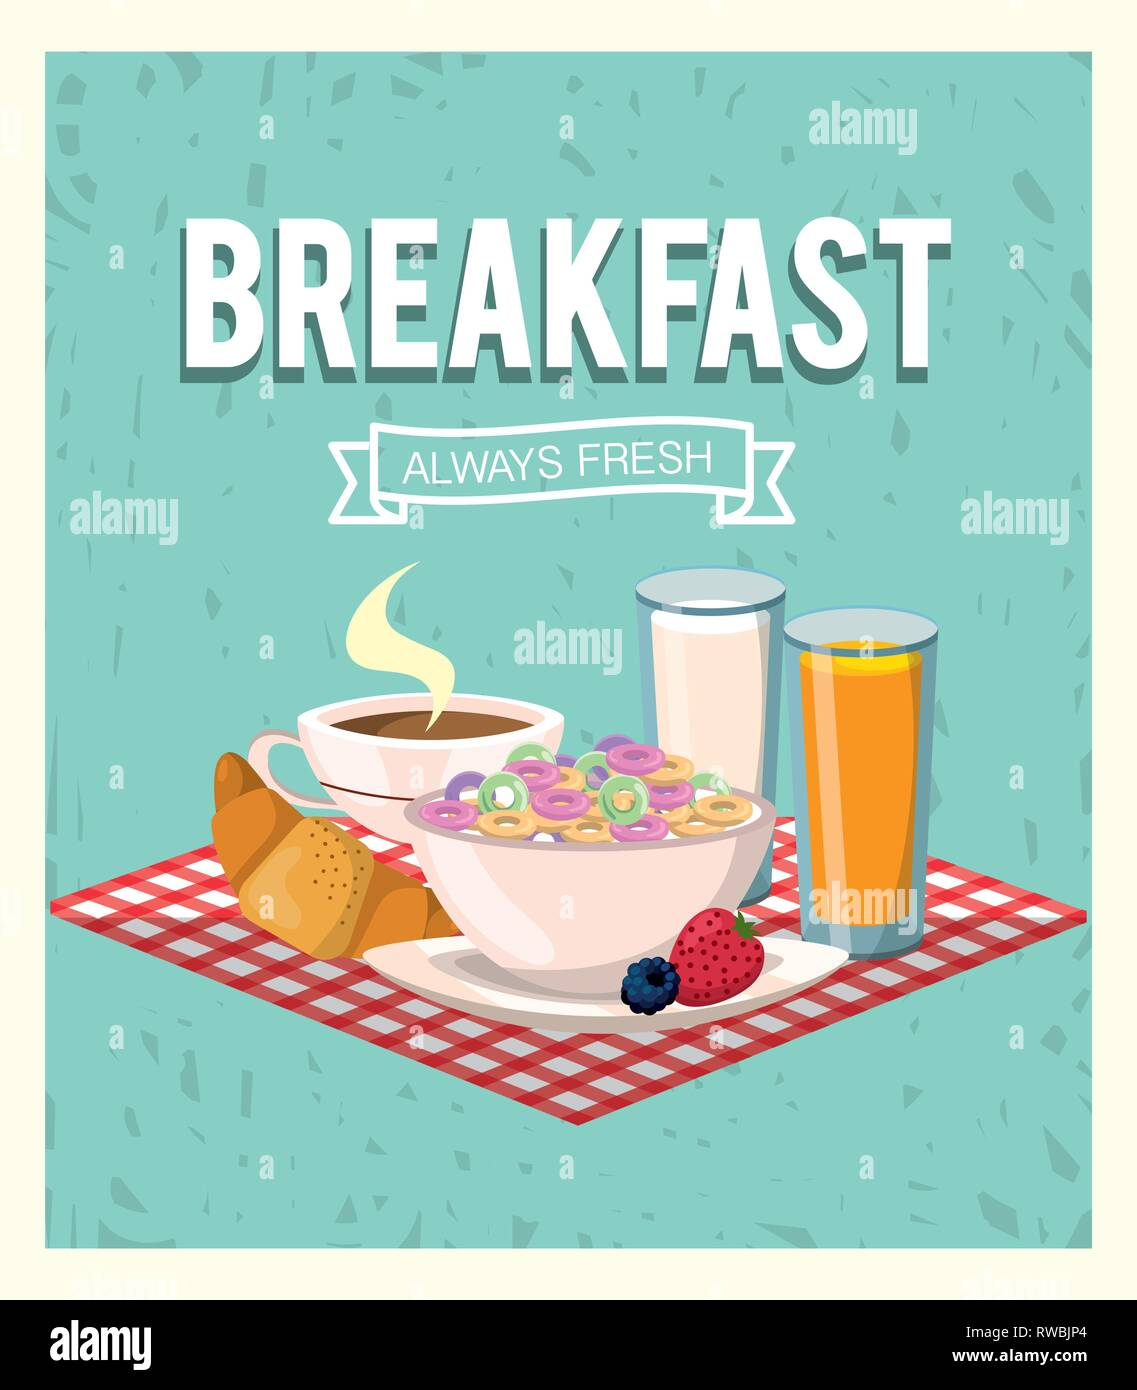 delicious cereal with orange juice and croissant breakfast - Stock Image